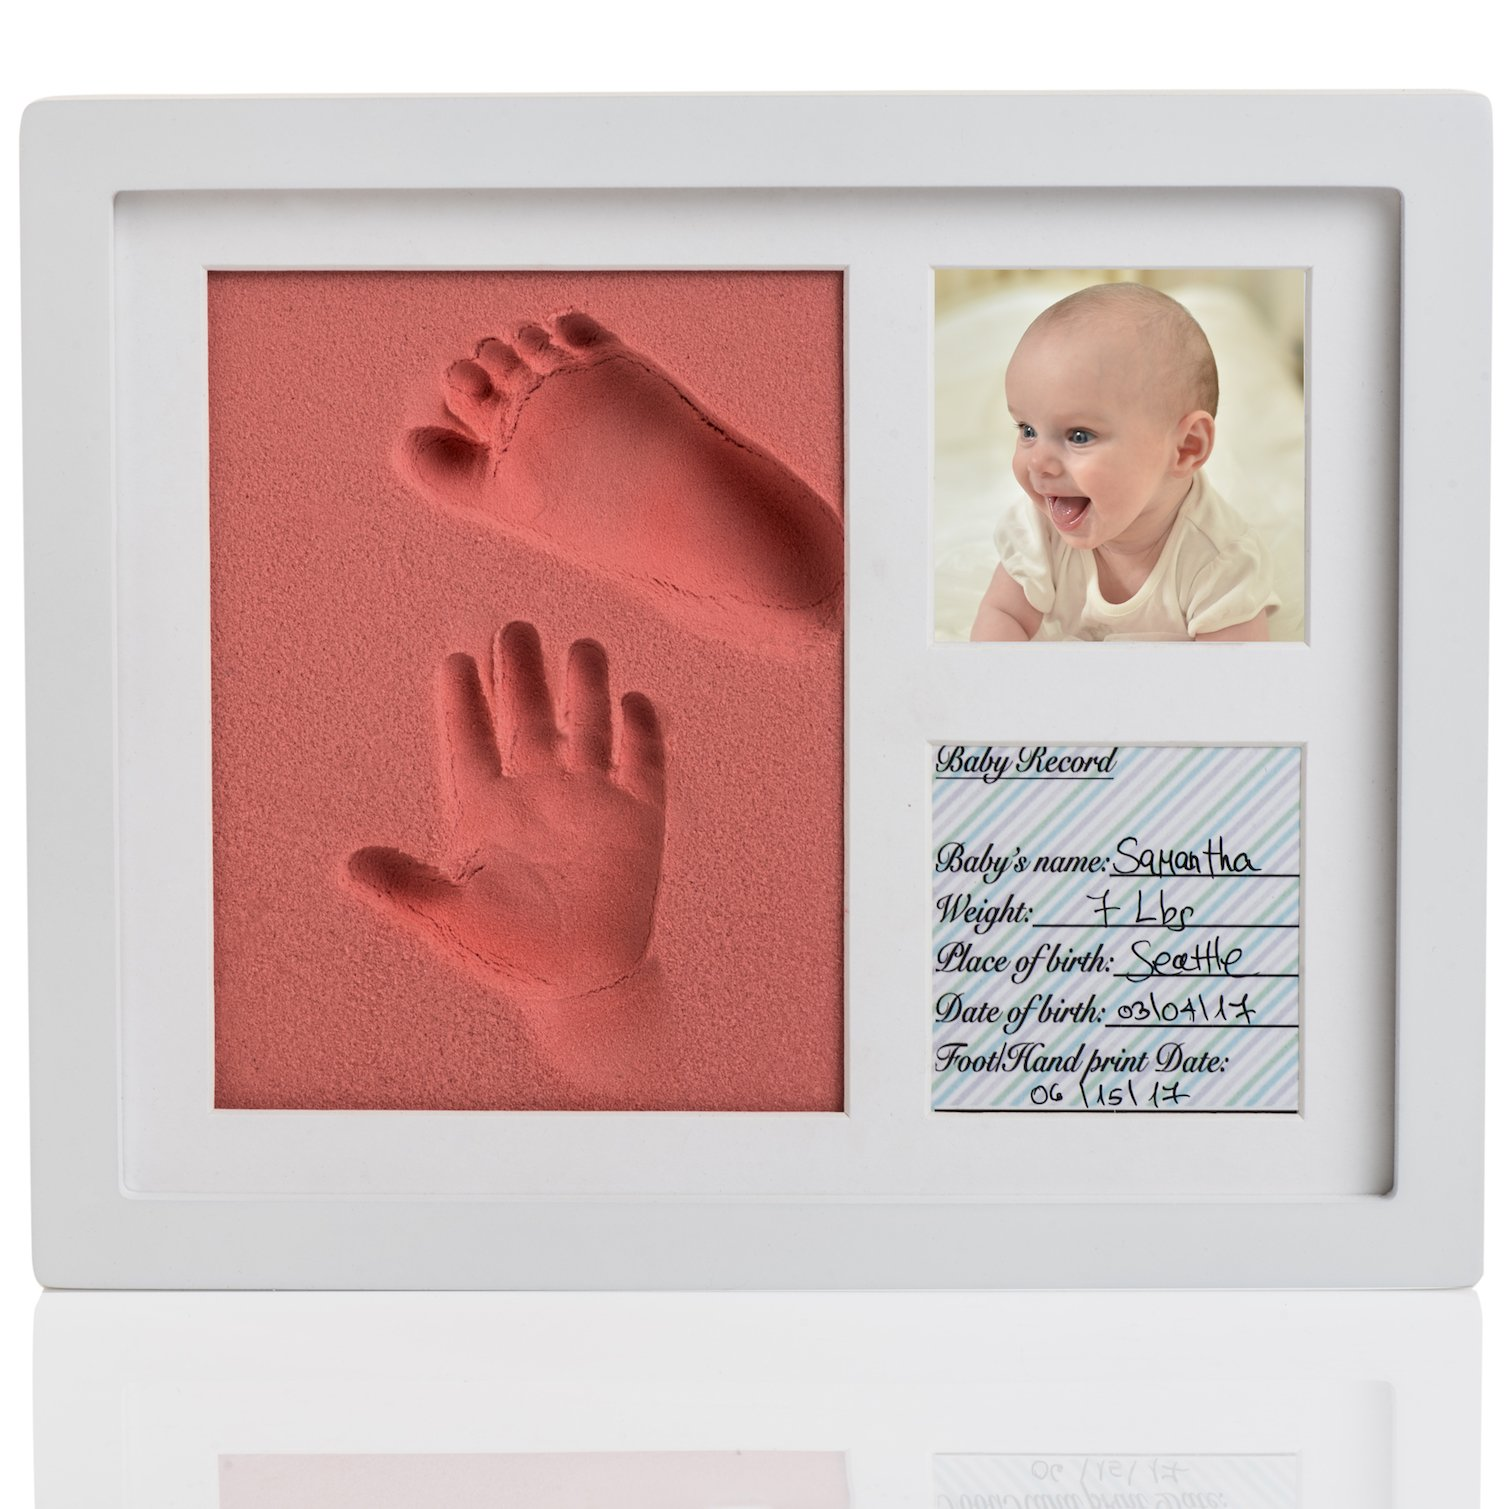 Amazing Baby Handprint and Footprint Frame Kit – Keepsake Preserves Memories – Non Toxic and Safe BIO-foam – Quality Wood Frame - Baby Gift For Baby Registry (Pink)